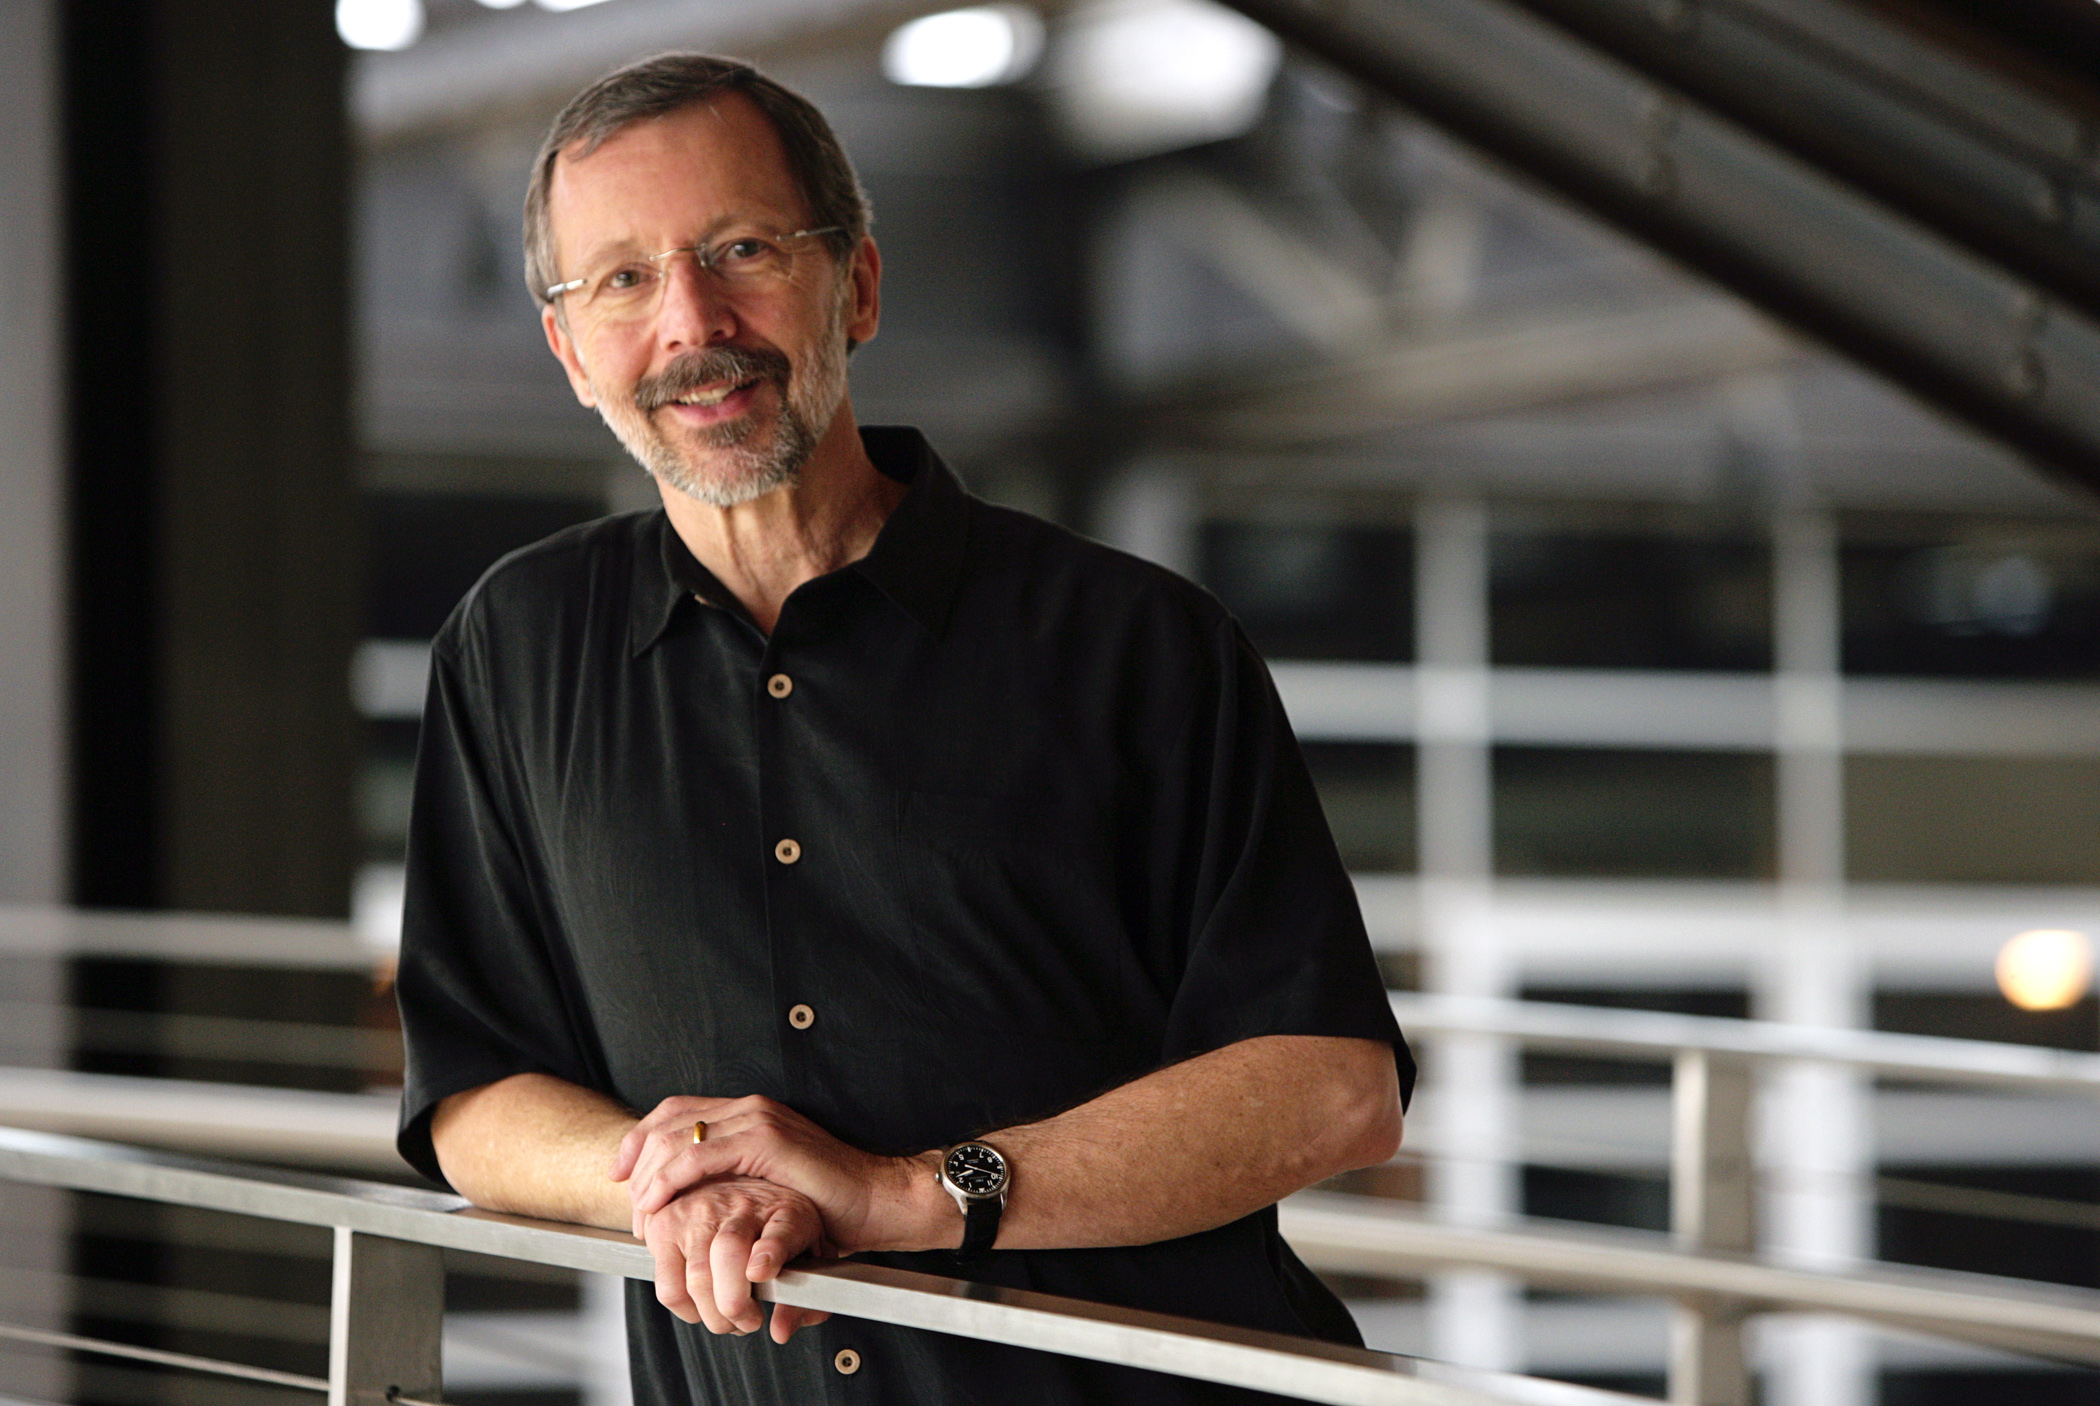 Ed Catmull, president and cofounder of Pixar Animation Studios, will deliver the university's general commencement address.